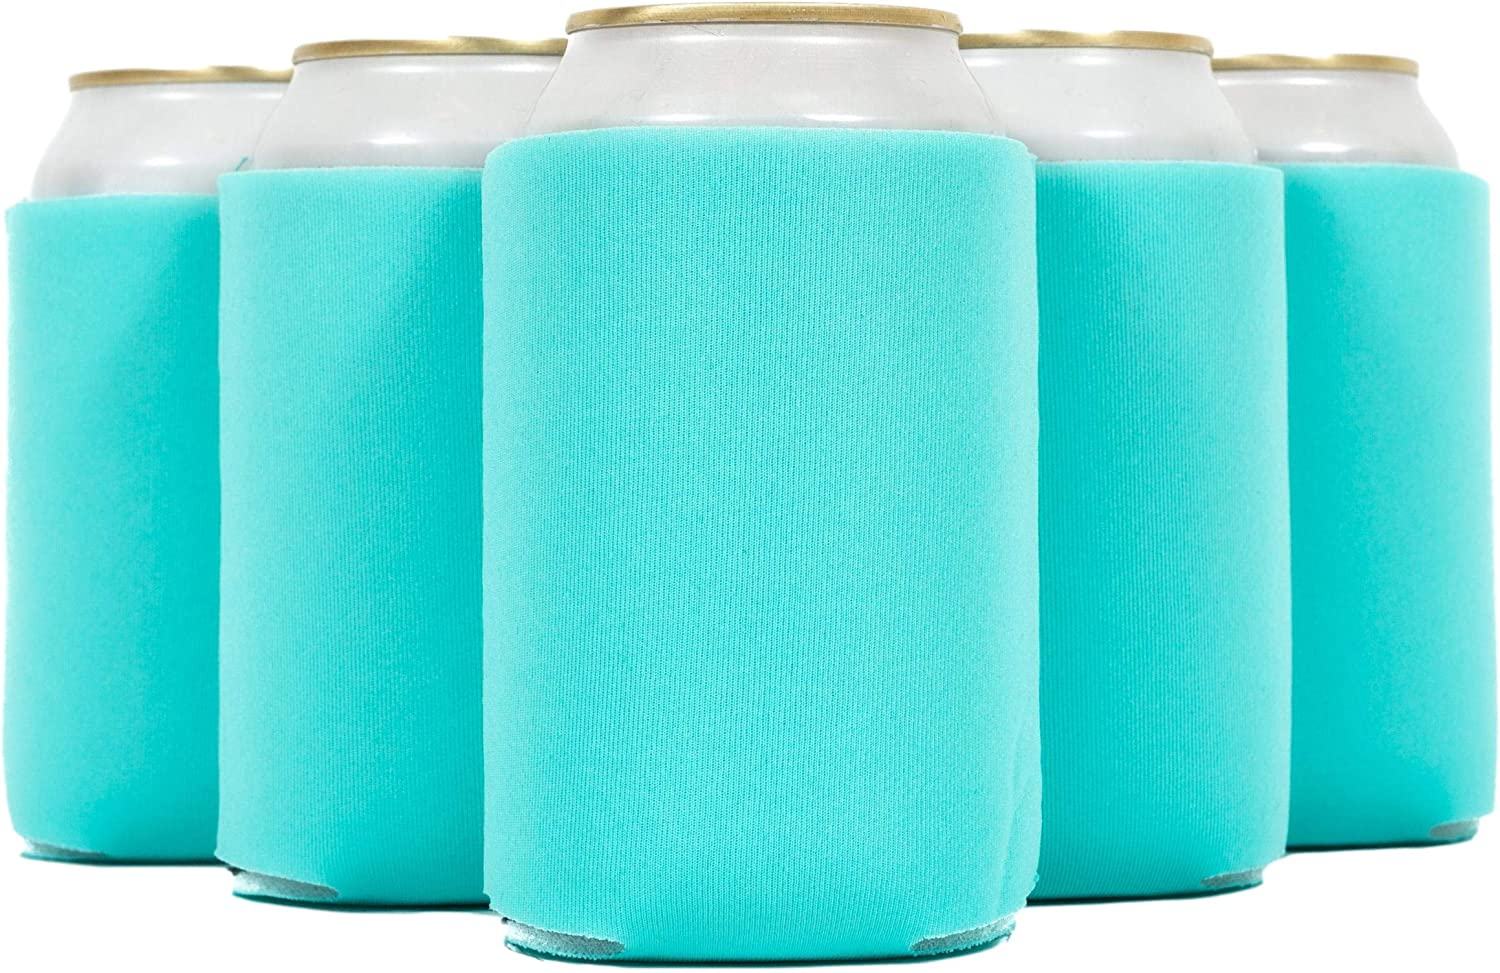 QualityPerfection 12 Beer Blank Can Cooler Sleeve, Coolies Sublimation HTV Insulated, Collapsible For DIY Customizable, Favors, Parties, Events or Weddings(12, Robin Egg Blue): Kitchen & Dining